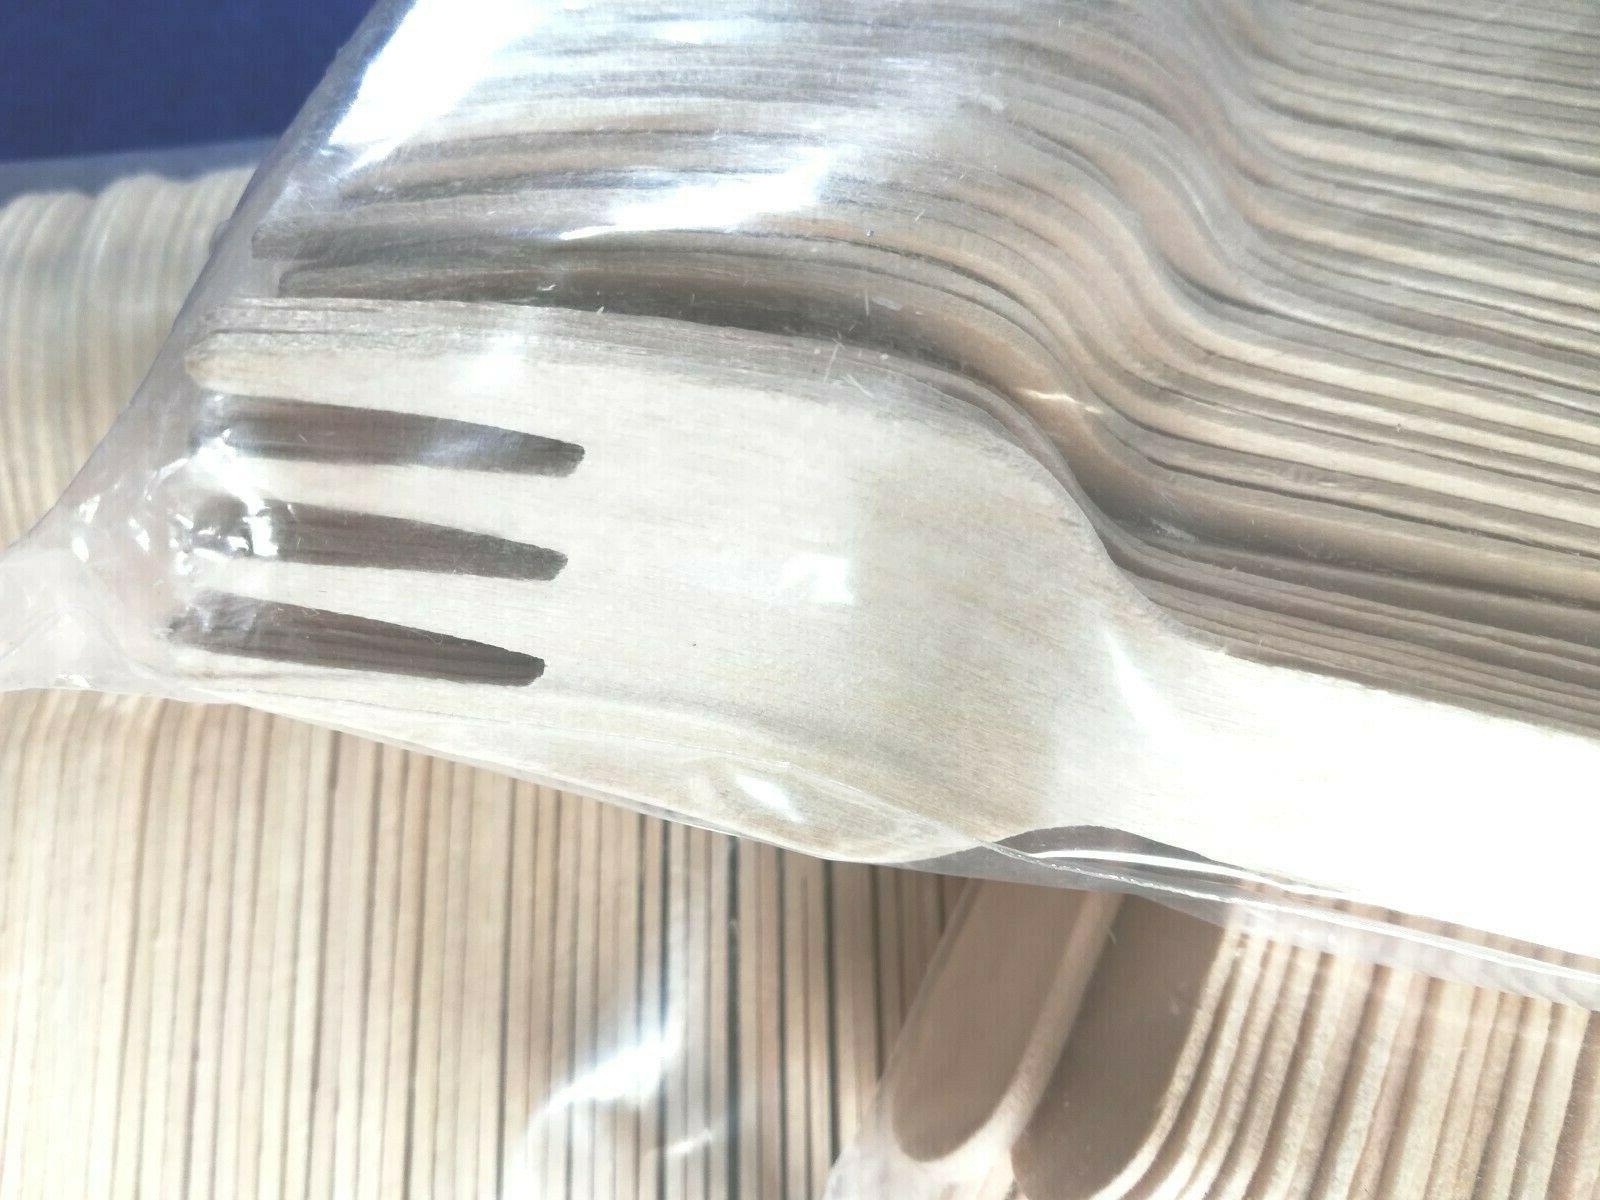 400 Wooden Cutlery Set Biodegradable Spoons,